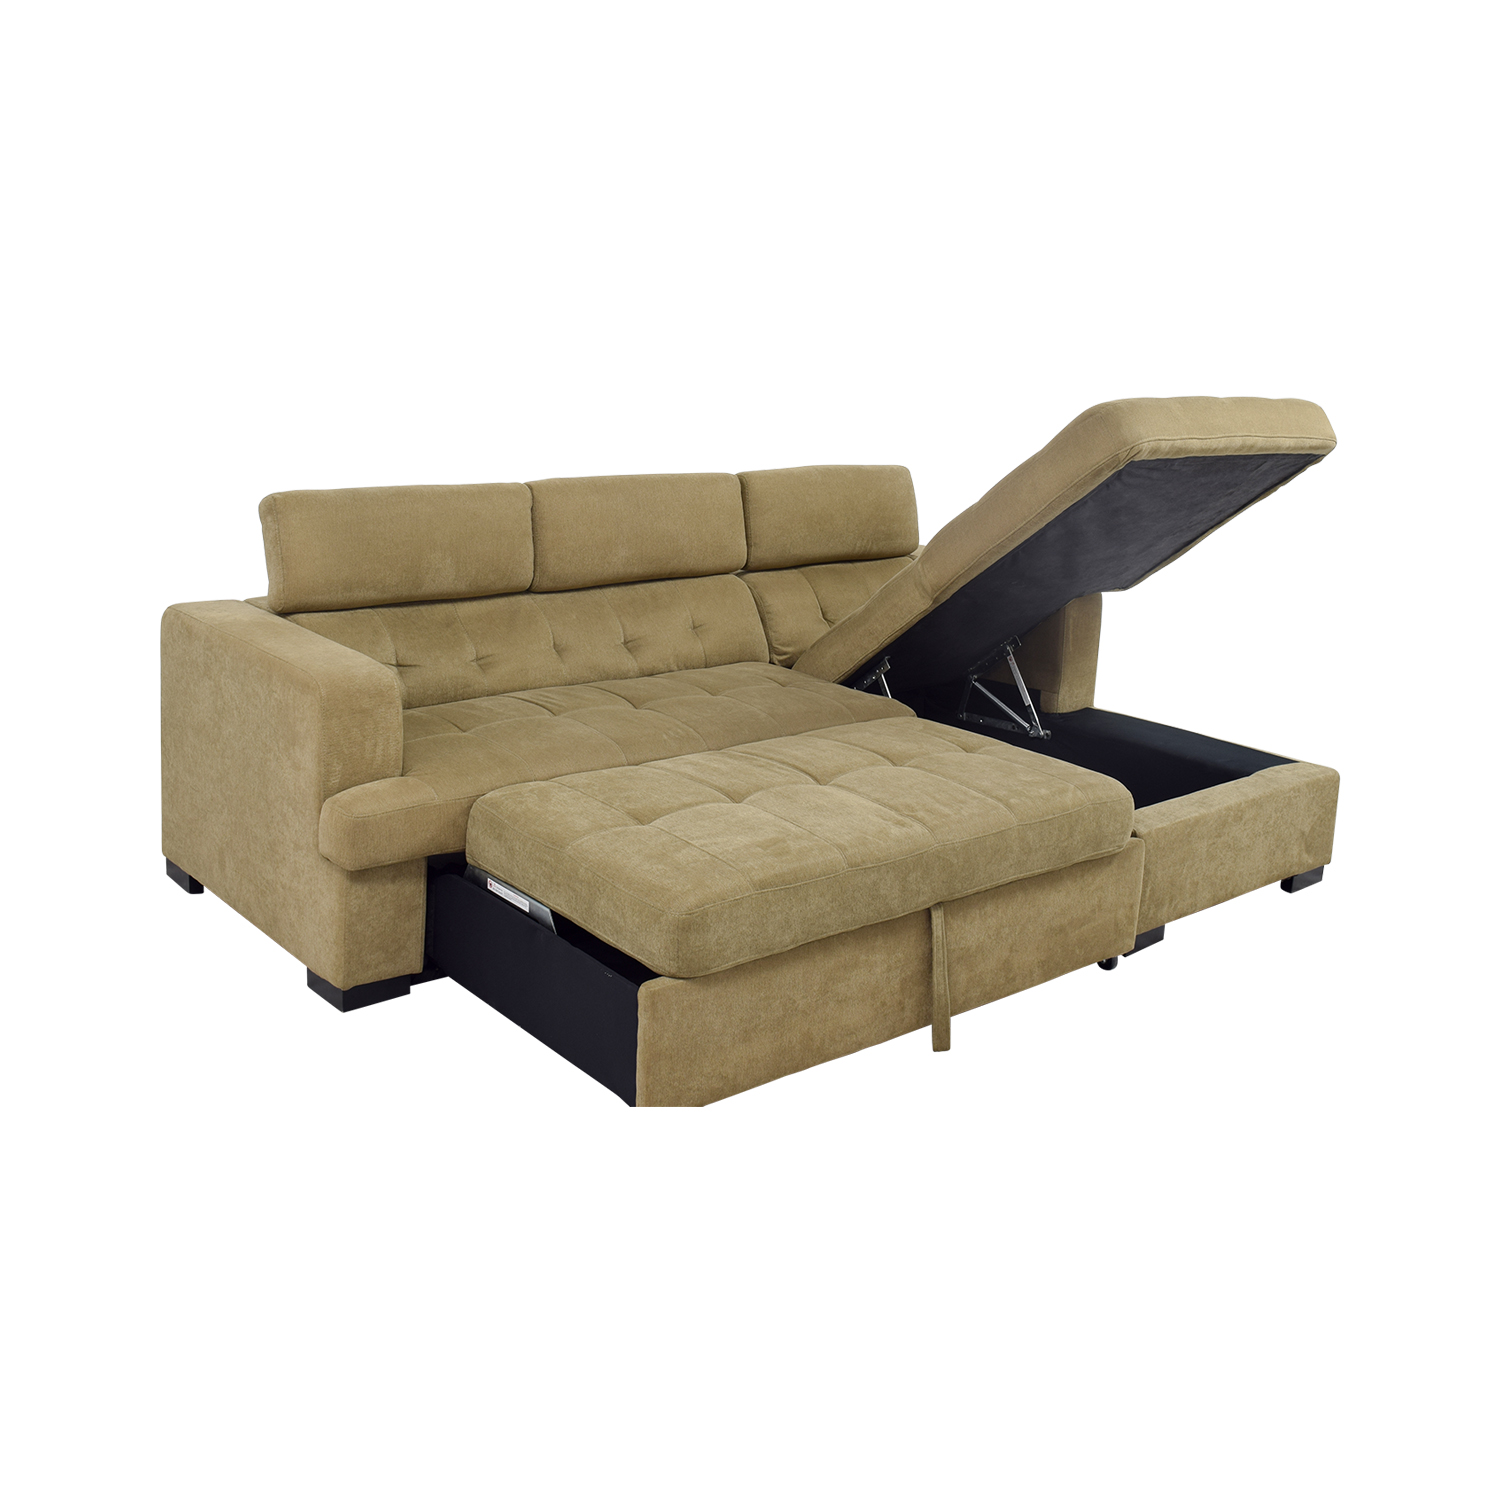 59% OFF - Bob\'s Discount Furniture Bob\'s Furniture Gold Chaise Sectional  Sleeper Sofa / Sofas